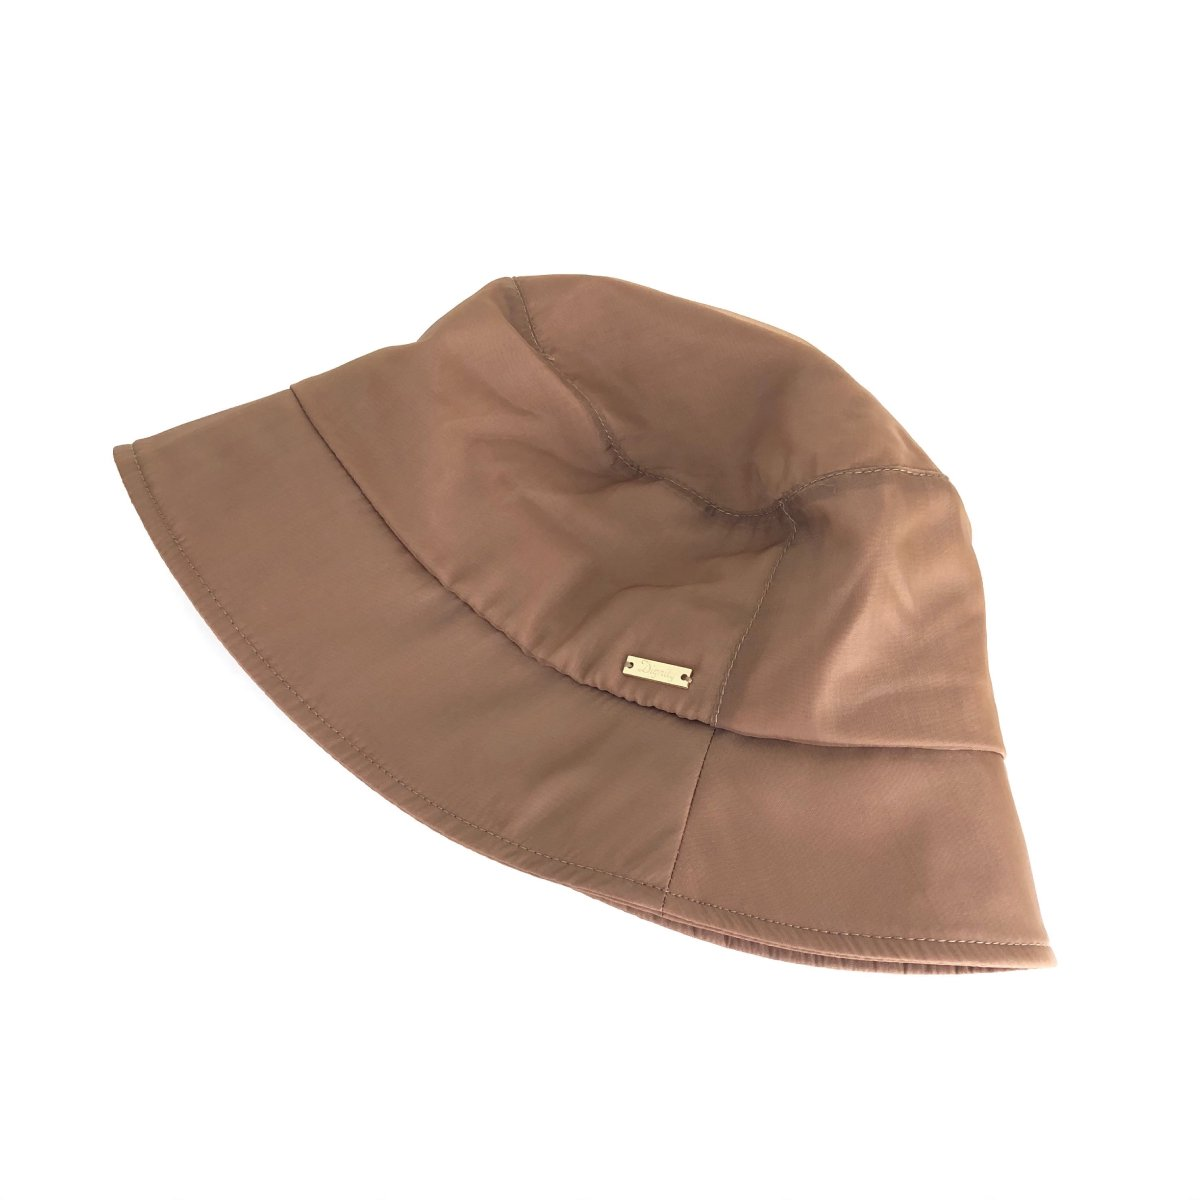 Tulle Classical Hat 詳細画像9